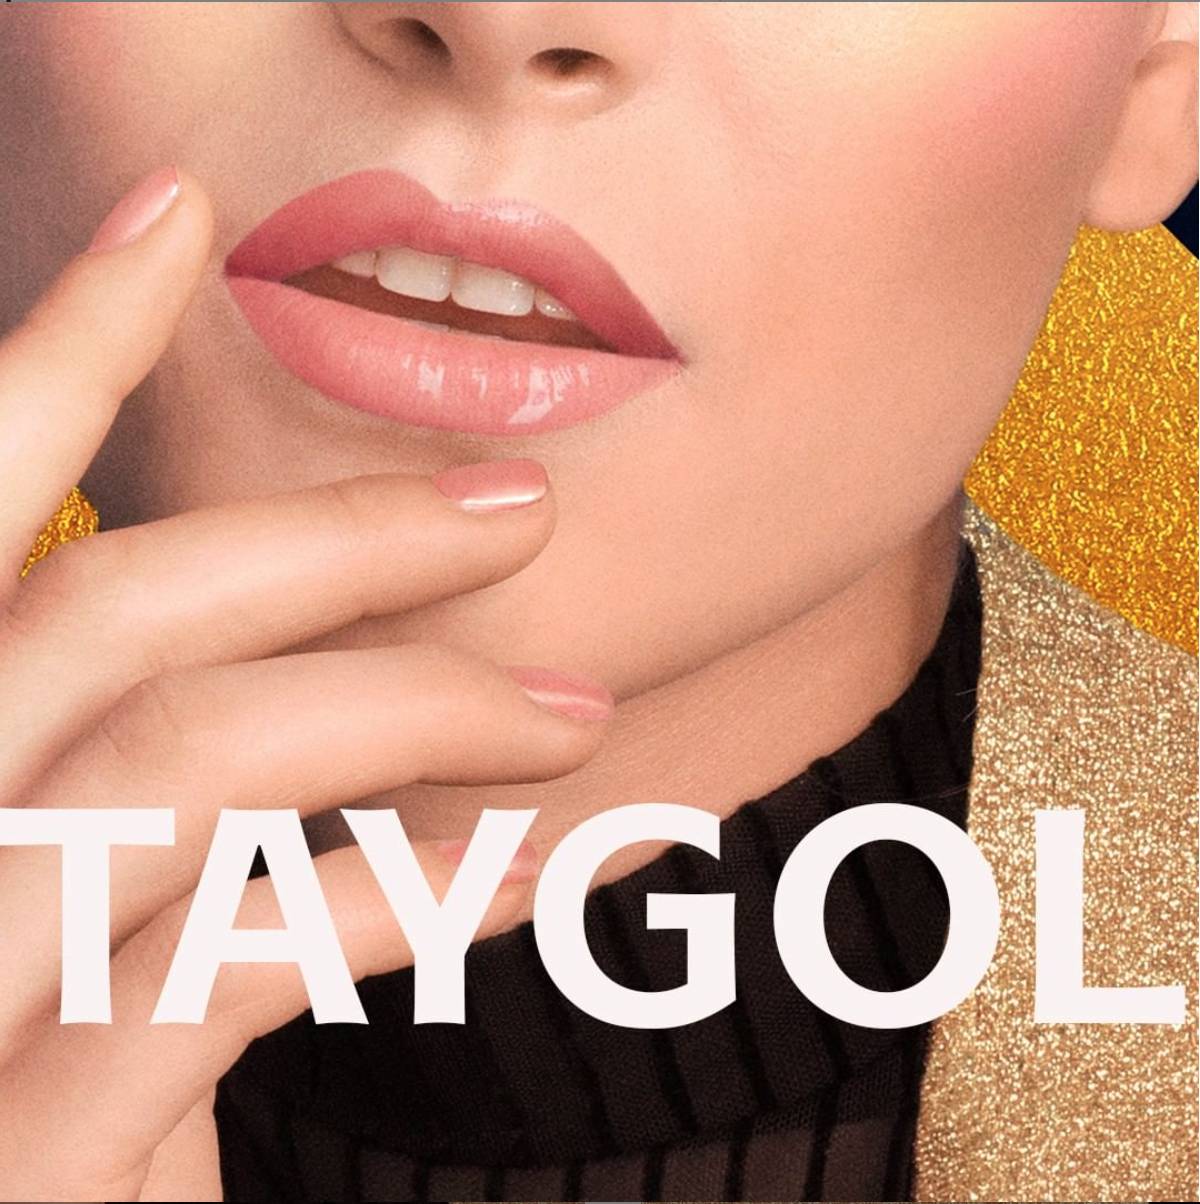 Andreas Ortner BeYu Cosmetics Stay Gold Luna Elisa Federowicz BeYu Make-up Artist Visagistin